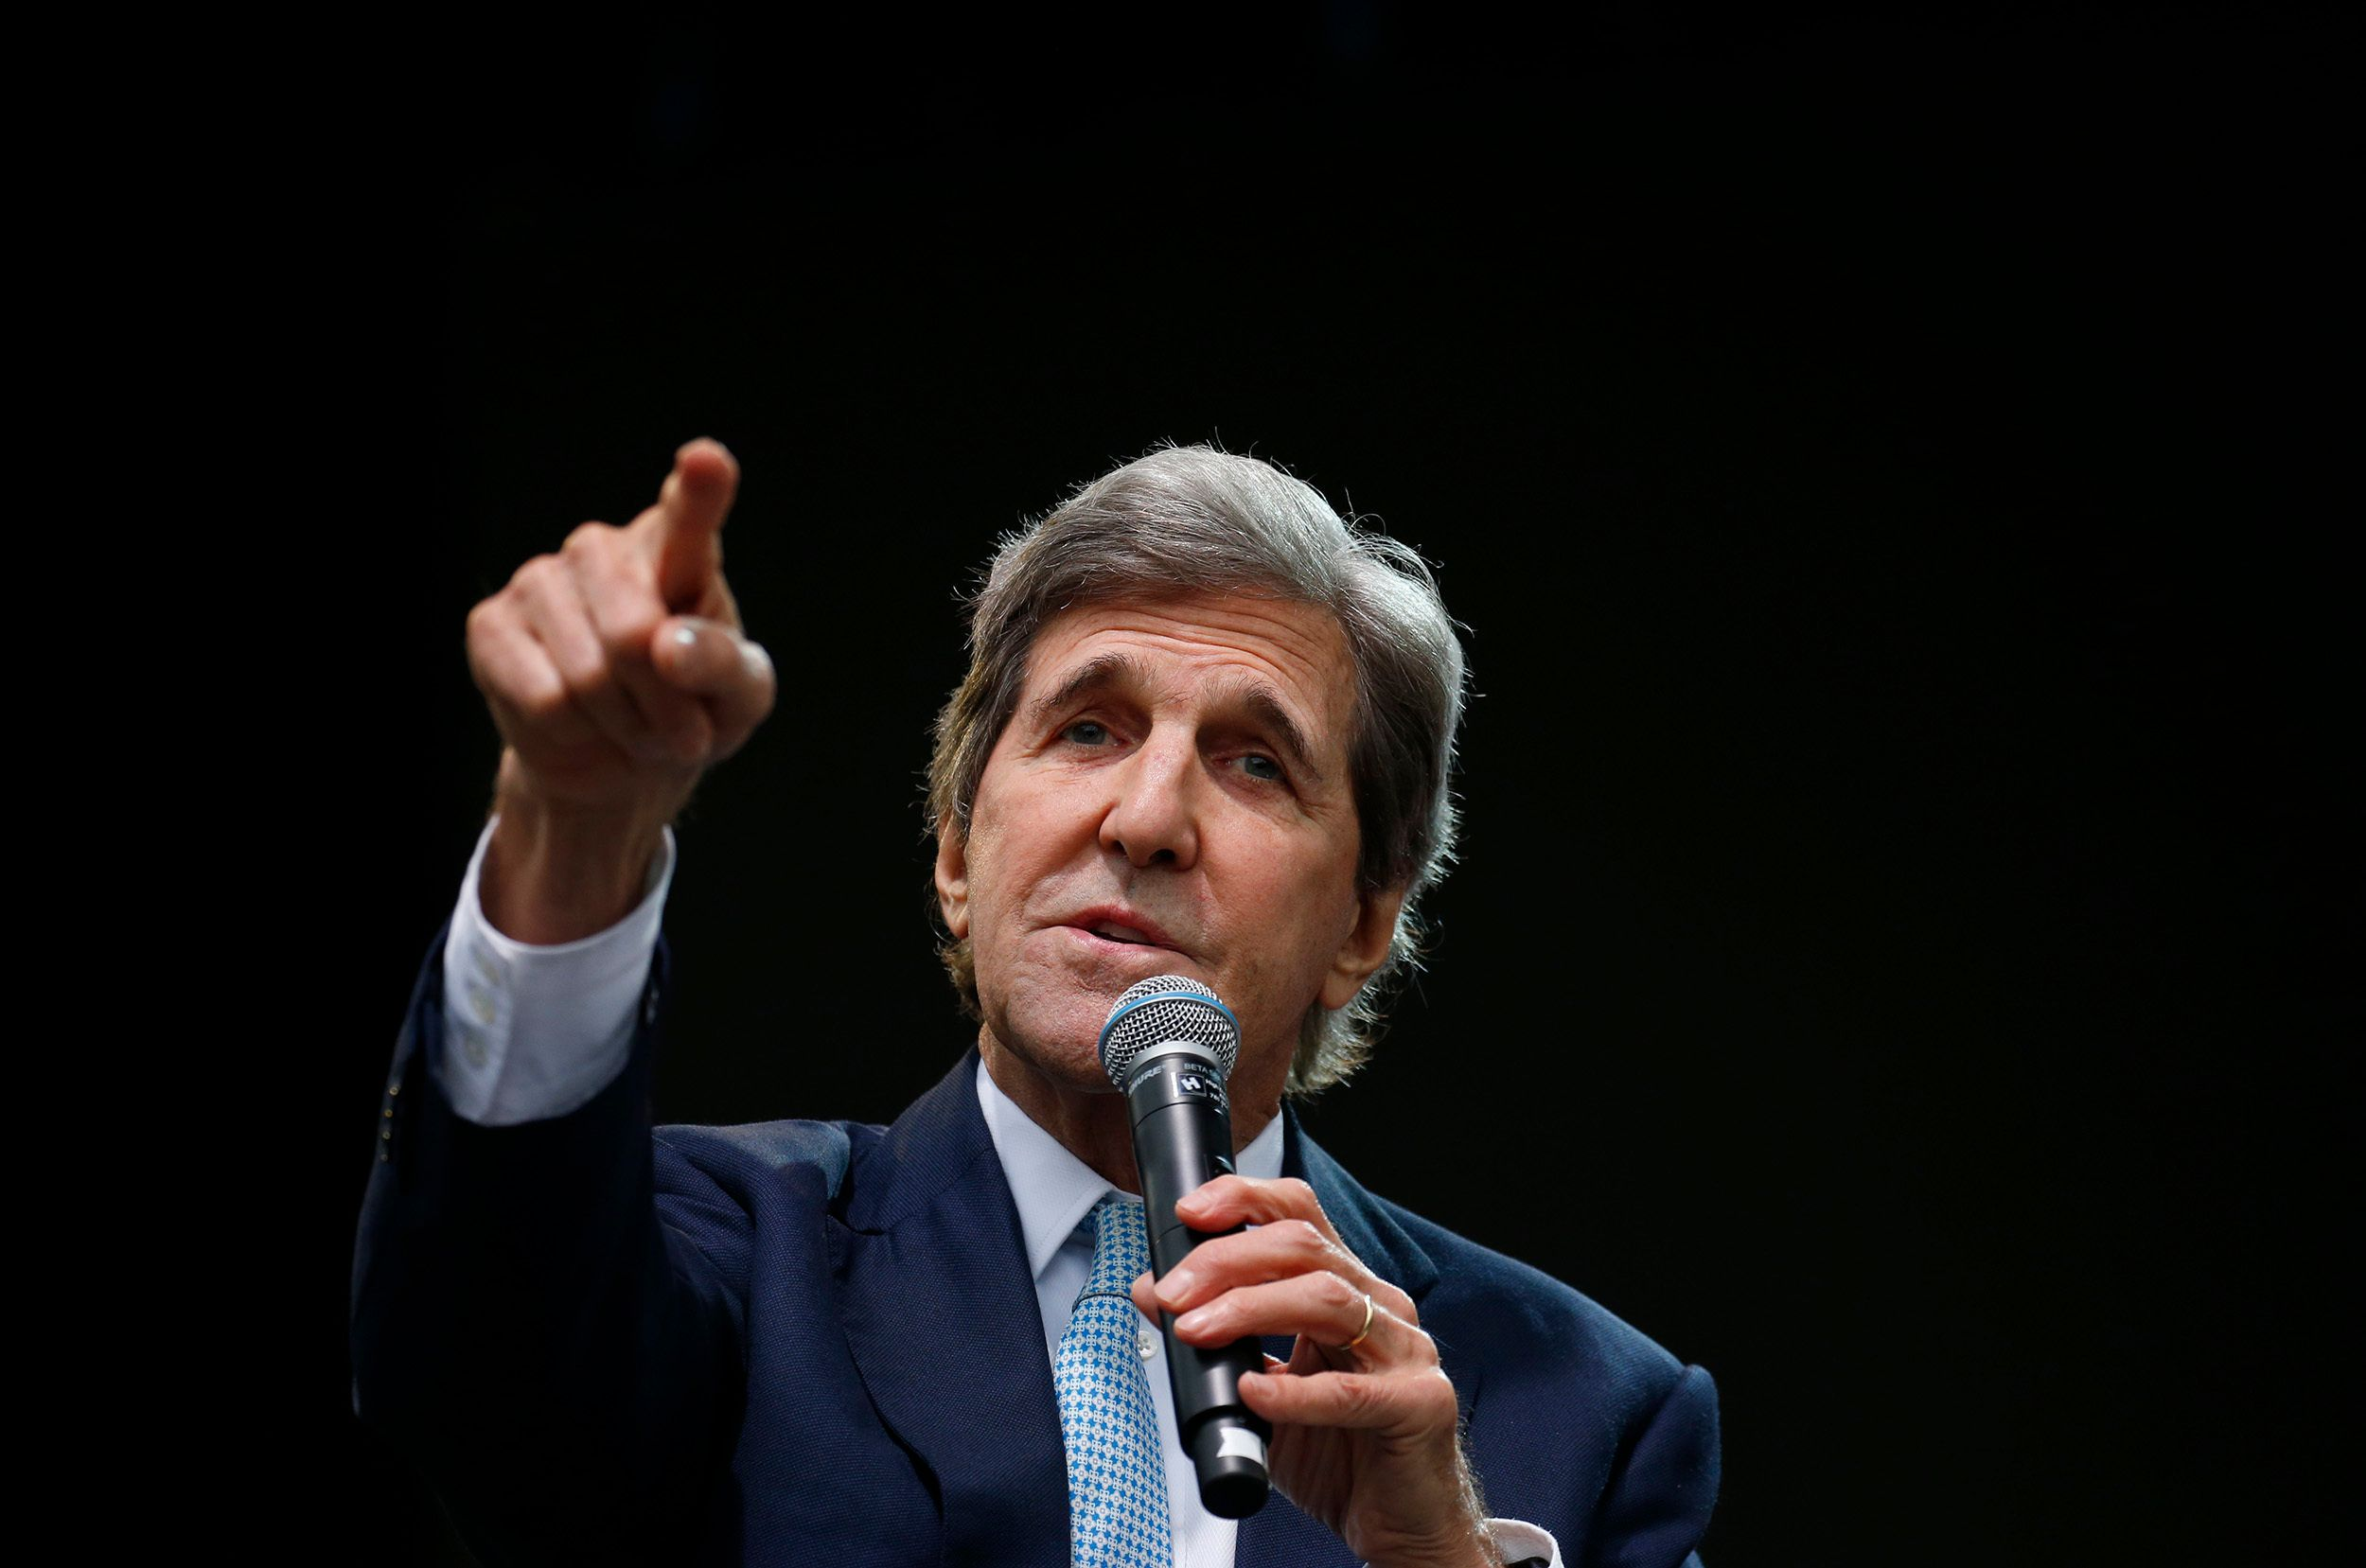 Former Massachusetts Senator John Kerry points as he speaks at the Forbes 30 Under 30 Summit, Monday, Oct. 1, 2018, in Boston. (AP Photo/Mary Schwalm)